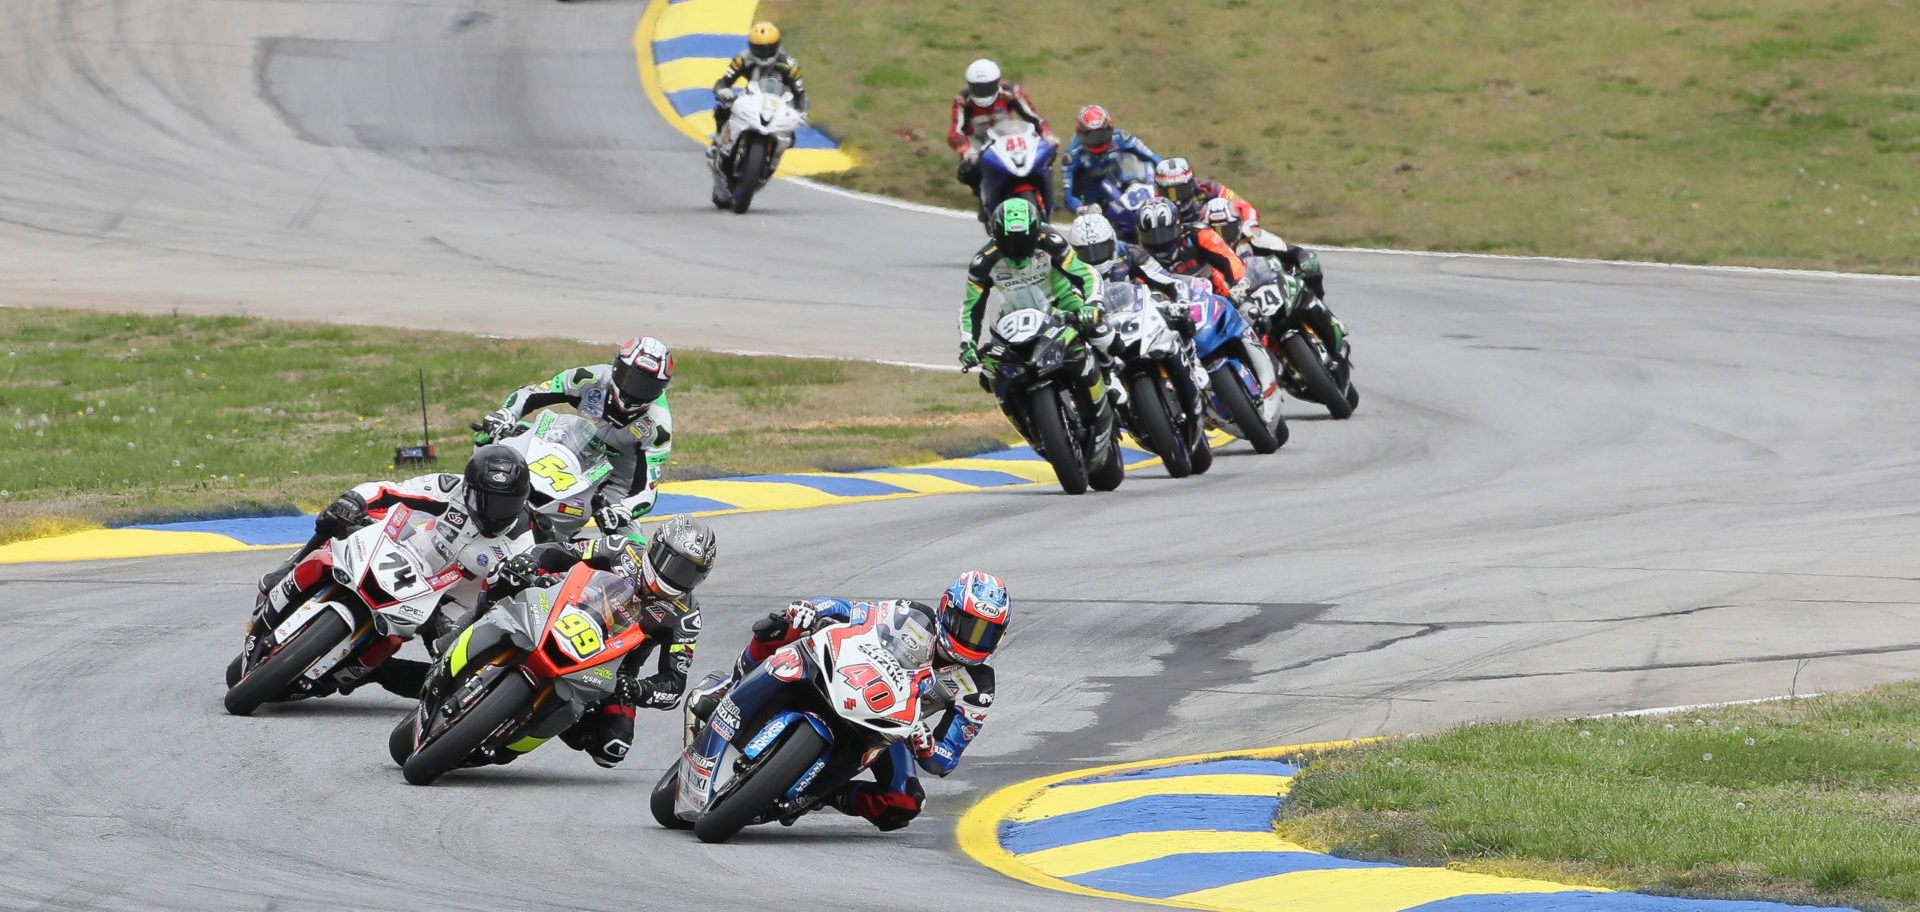 Sean Dylan Kelly (40), PJ Jacobsen (99), Bryce Prince (74), Richie Escalante (54), and others in action during MotoAmerica Supersport Race One at Road Atlanta in 2019. Photo by Brian J. Nelson.